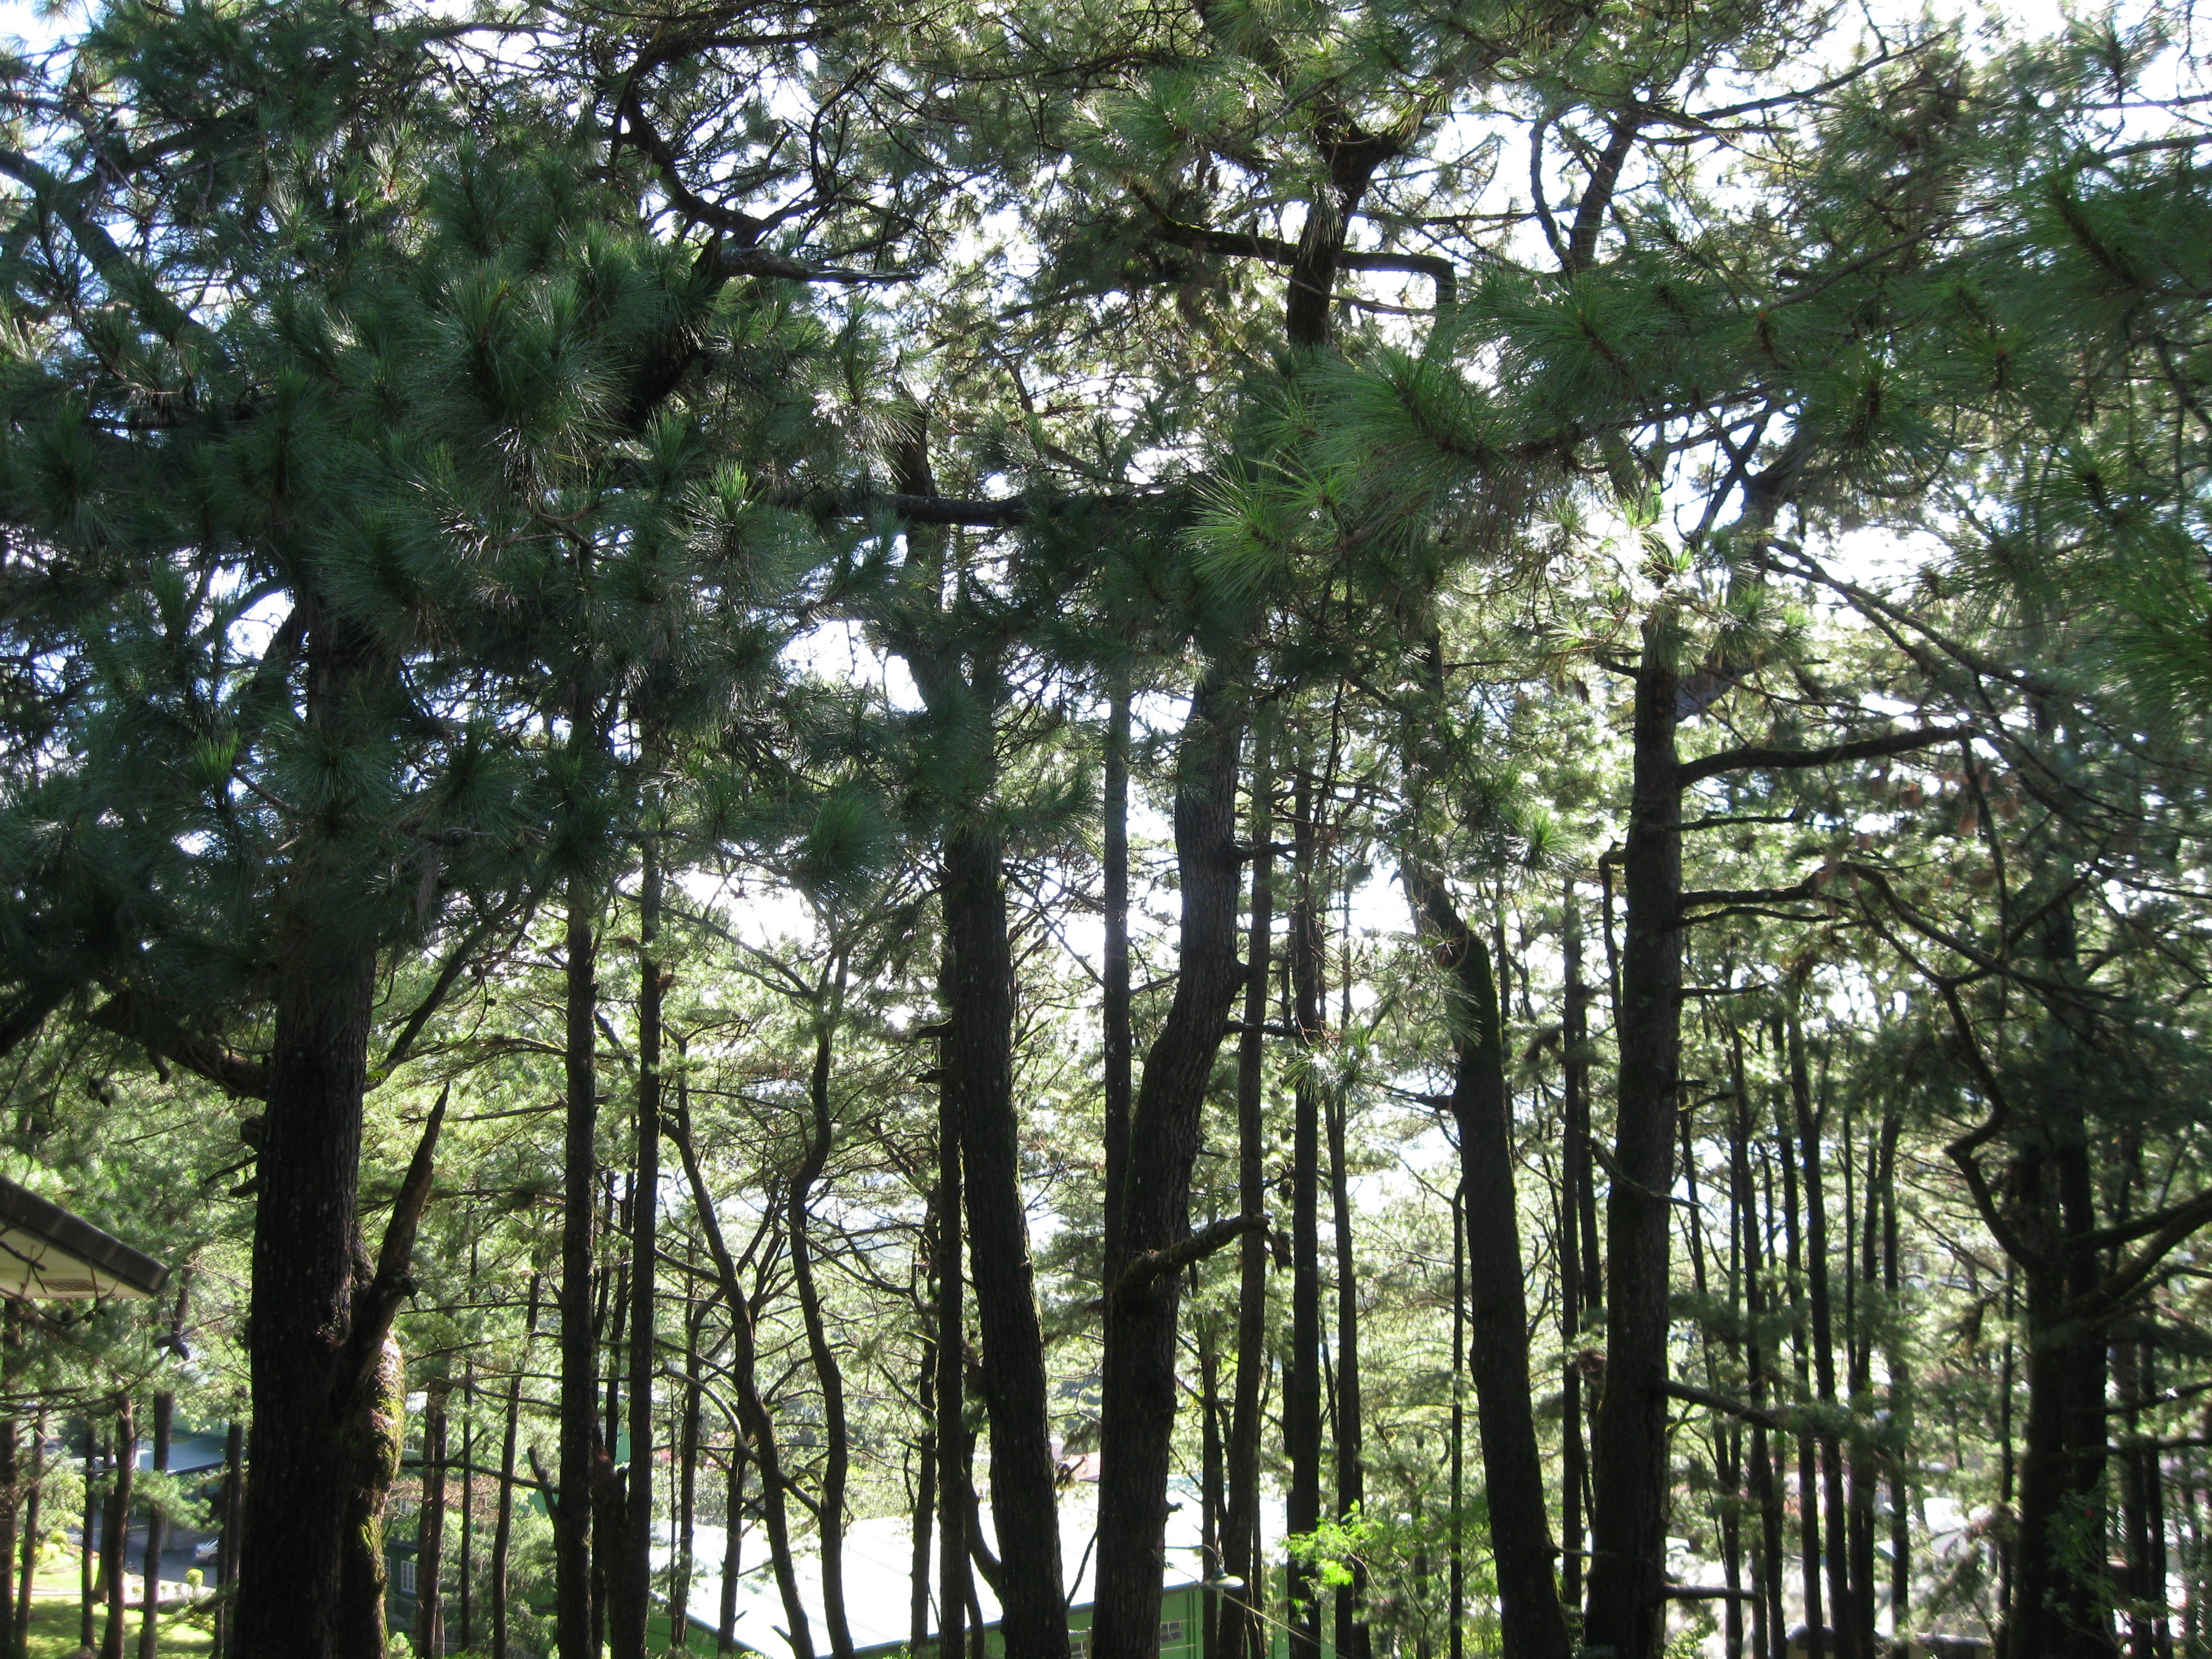 Pine Trees in Baguio